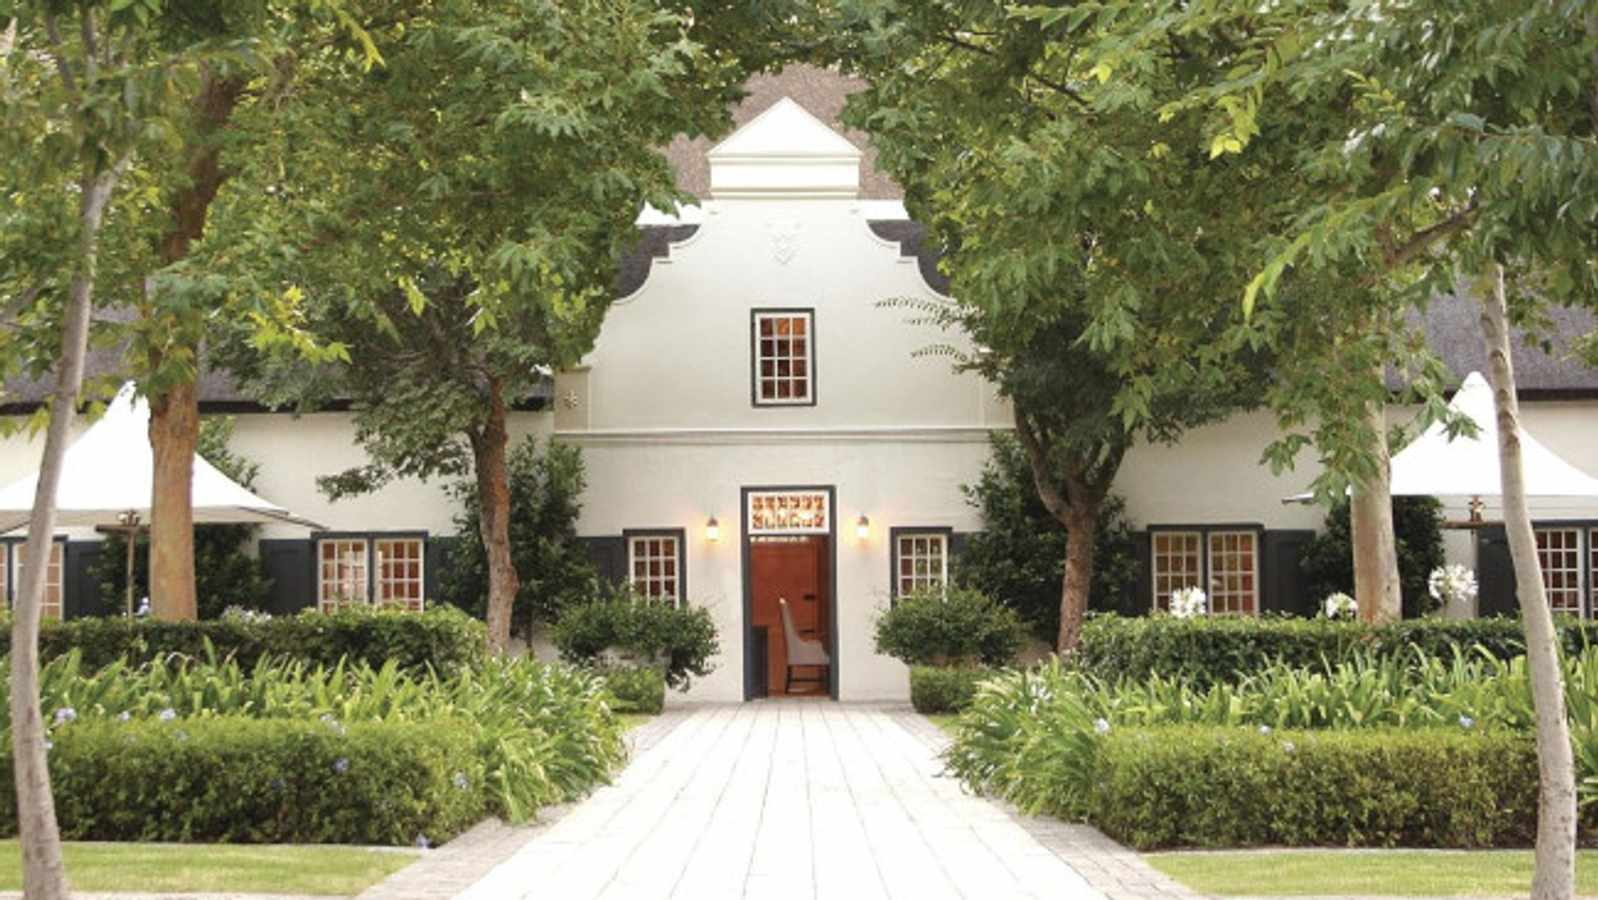 7 local spots for a lekker braai and chill on Heritage Day